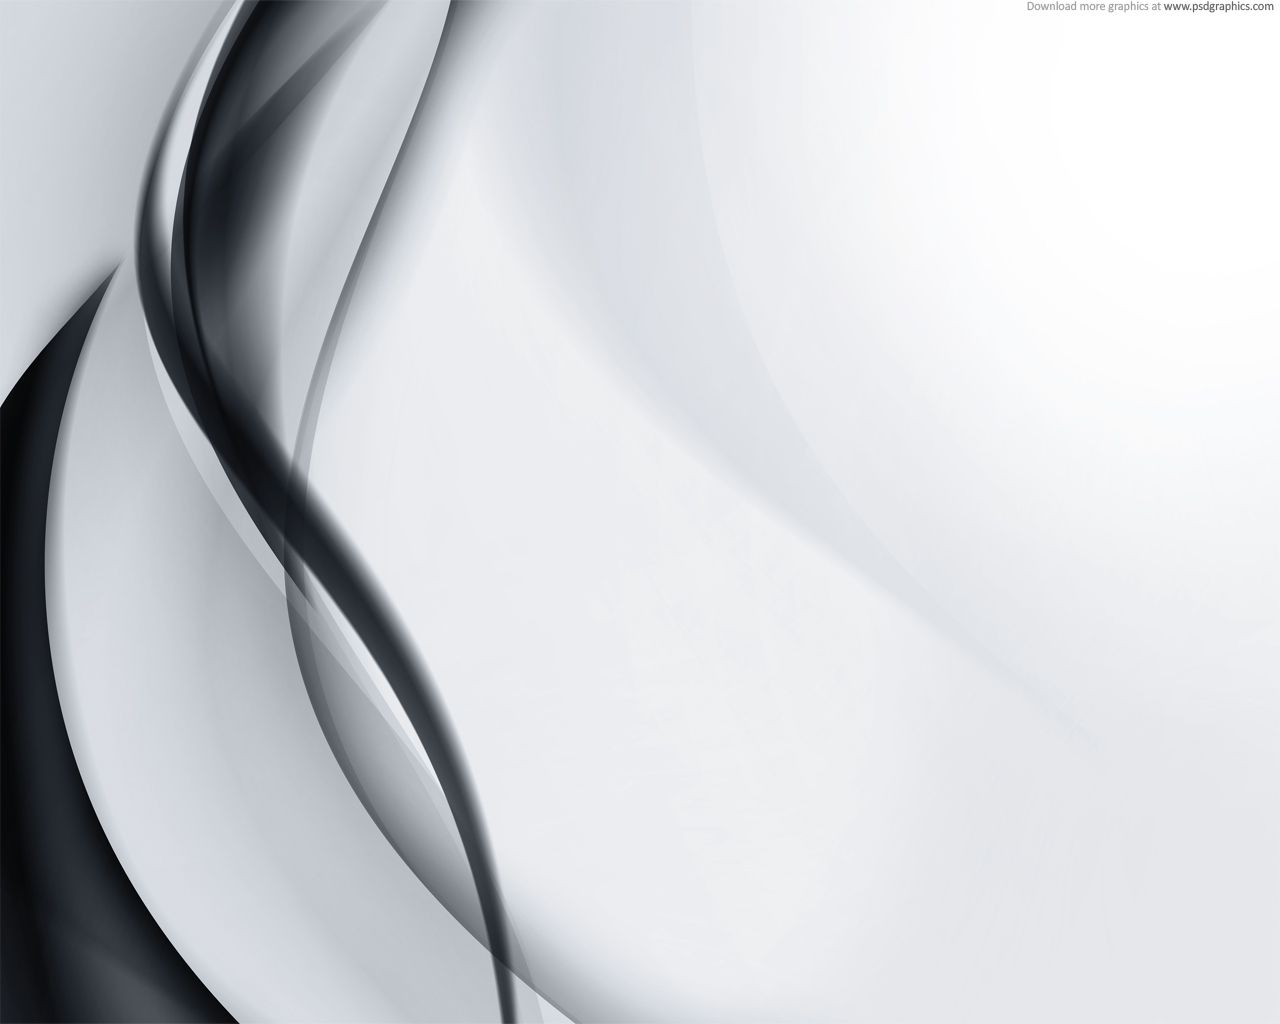 Black And White Abstract Background Planos De Fundo Preto E Branco